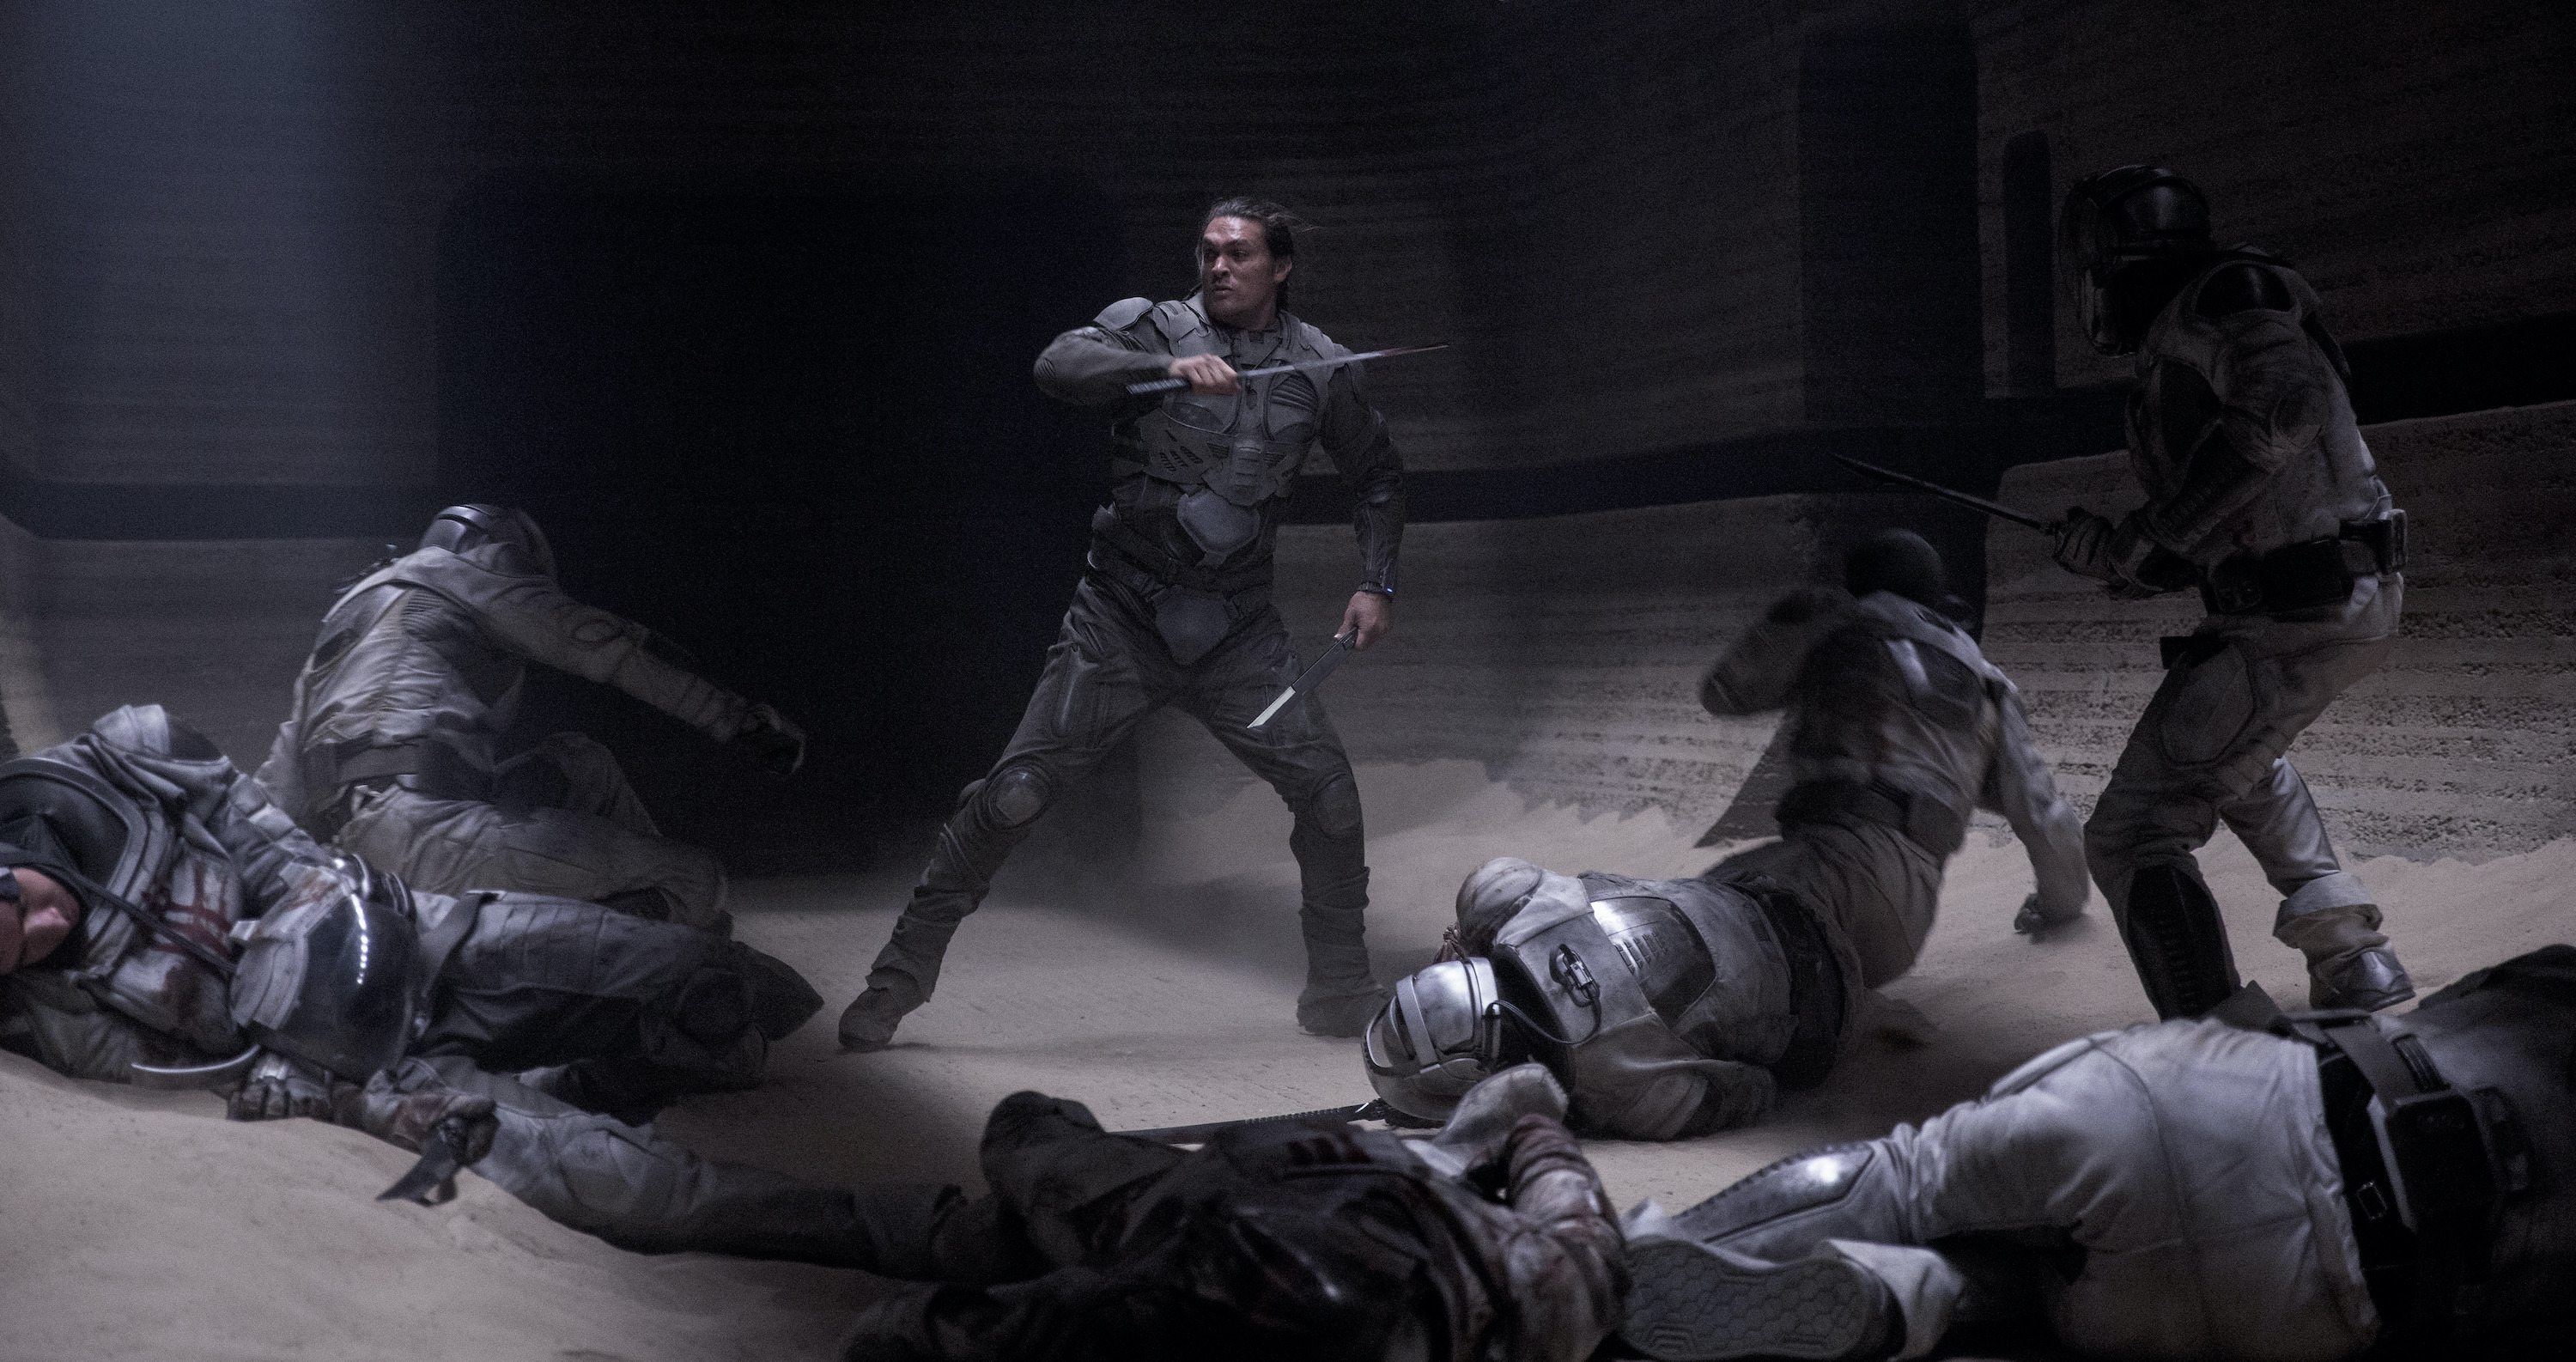 Jason Momoa as Duncan Idaho, wielding two blades and surrounded by collapsed or collapsing soldiers in grey armor in Dune